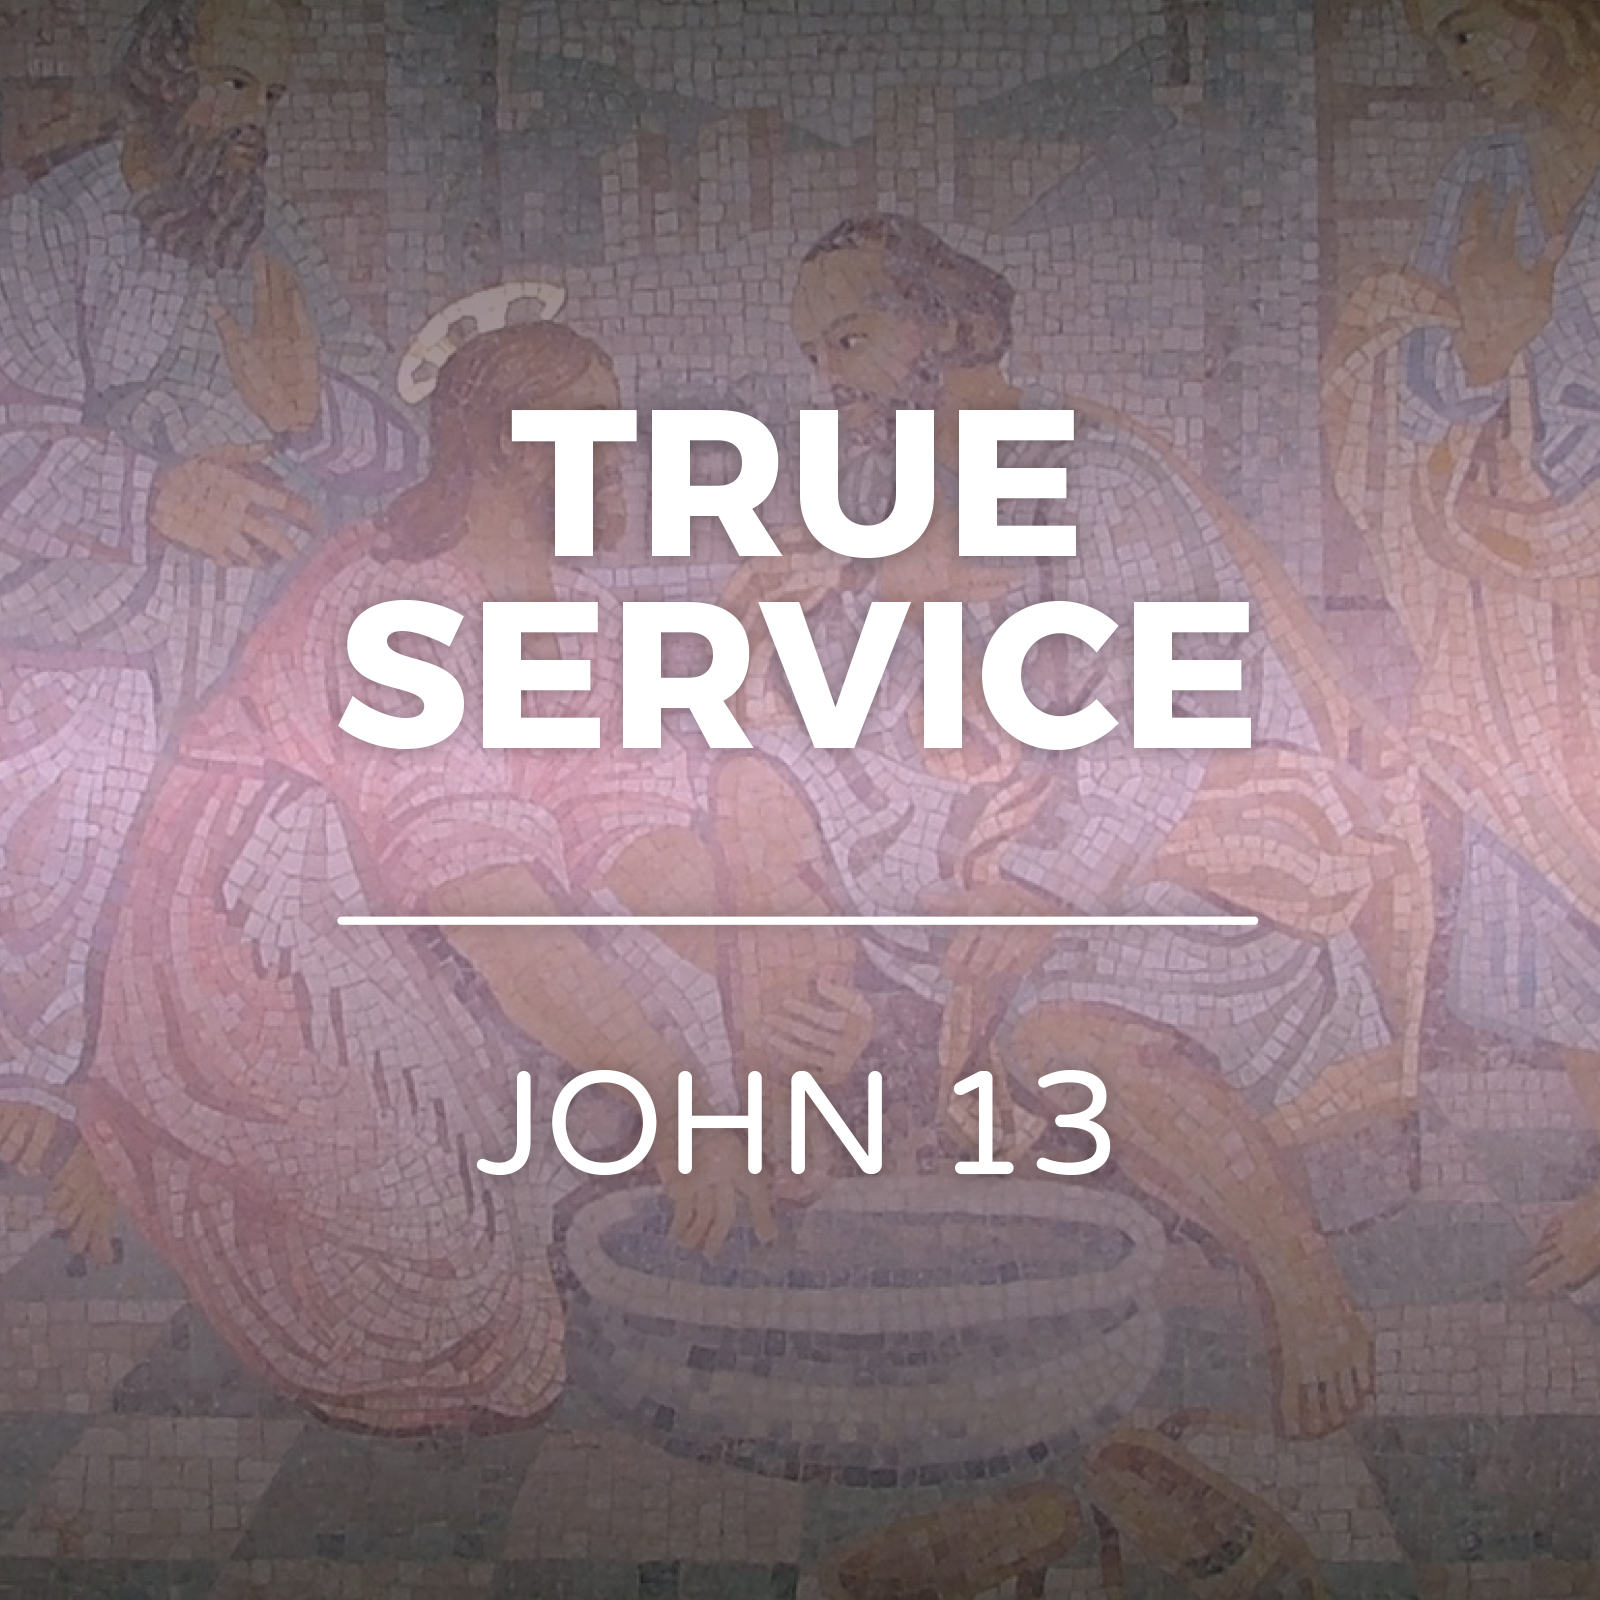 True Service - John 13 Sermon Series - Hope Church Huddersfield